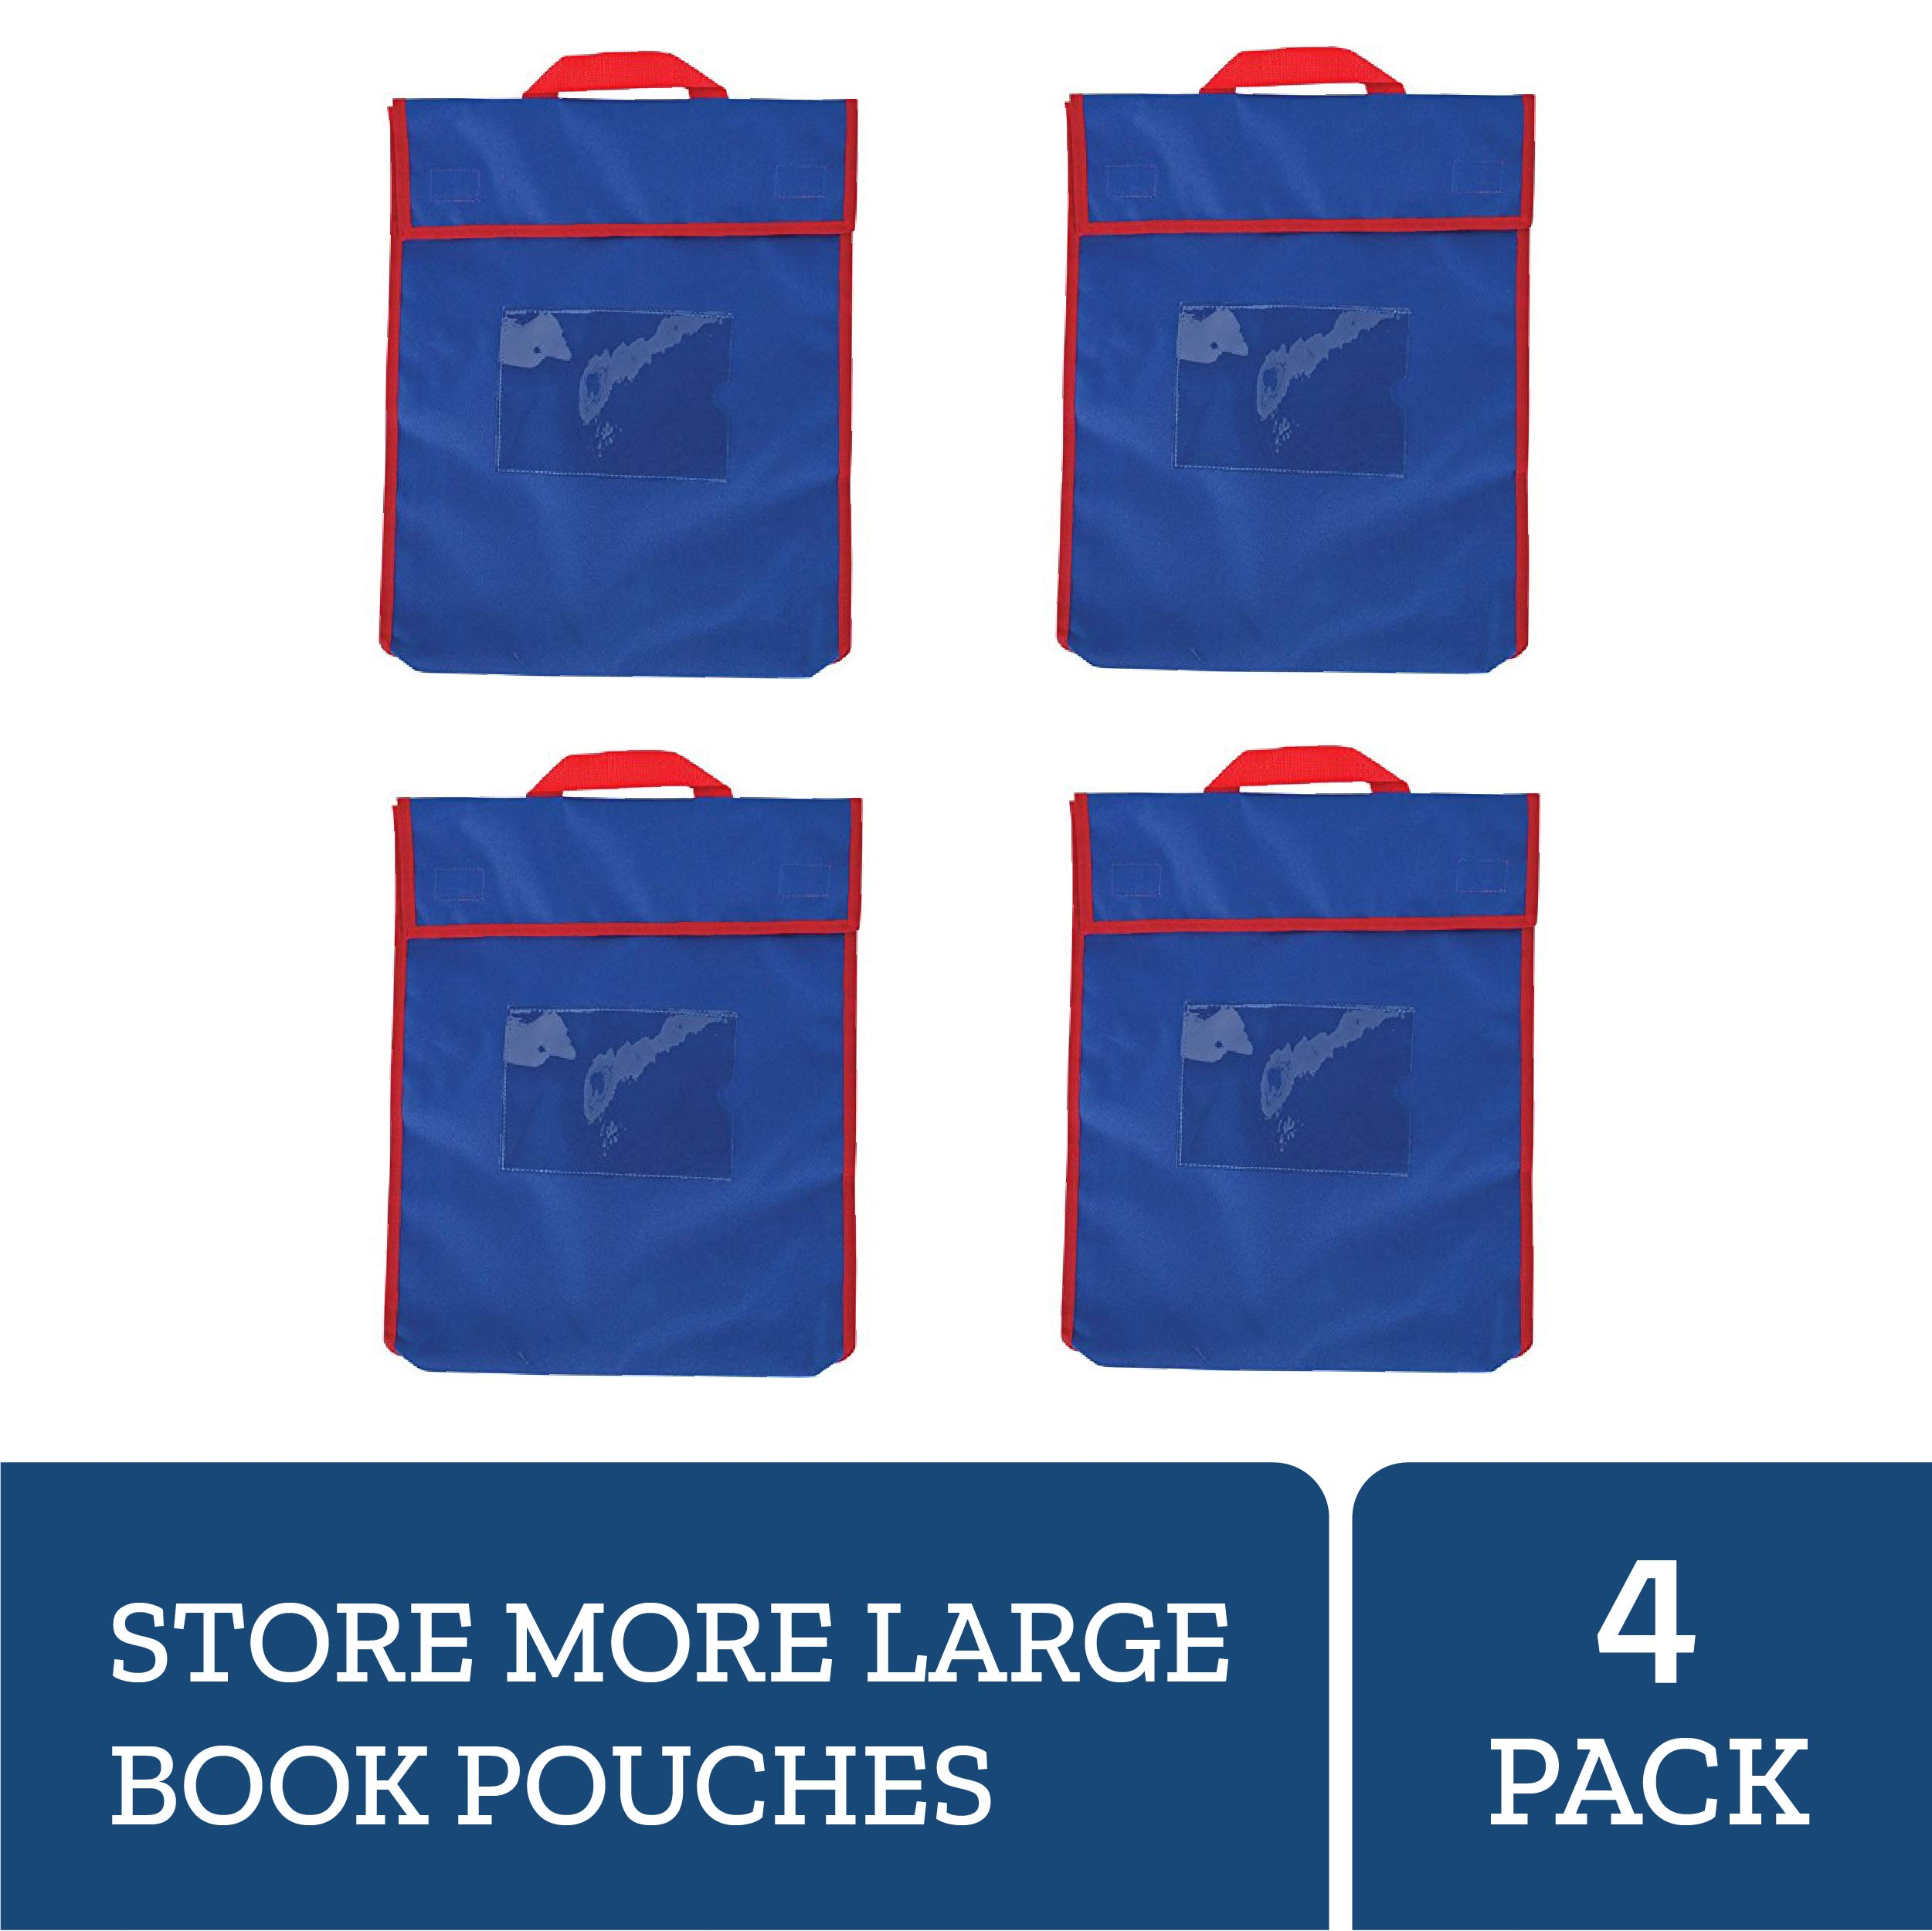 Really Good Stuff Store More Large Book Pouches, 12''x1''x15'' (Set of 4) - Available in 16 Colors - Send Home Books and Homework in Durable Fabric Book Bag - Stitched-On Handle, Clear Name Tag Pocket